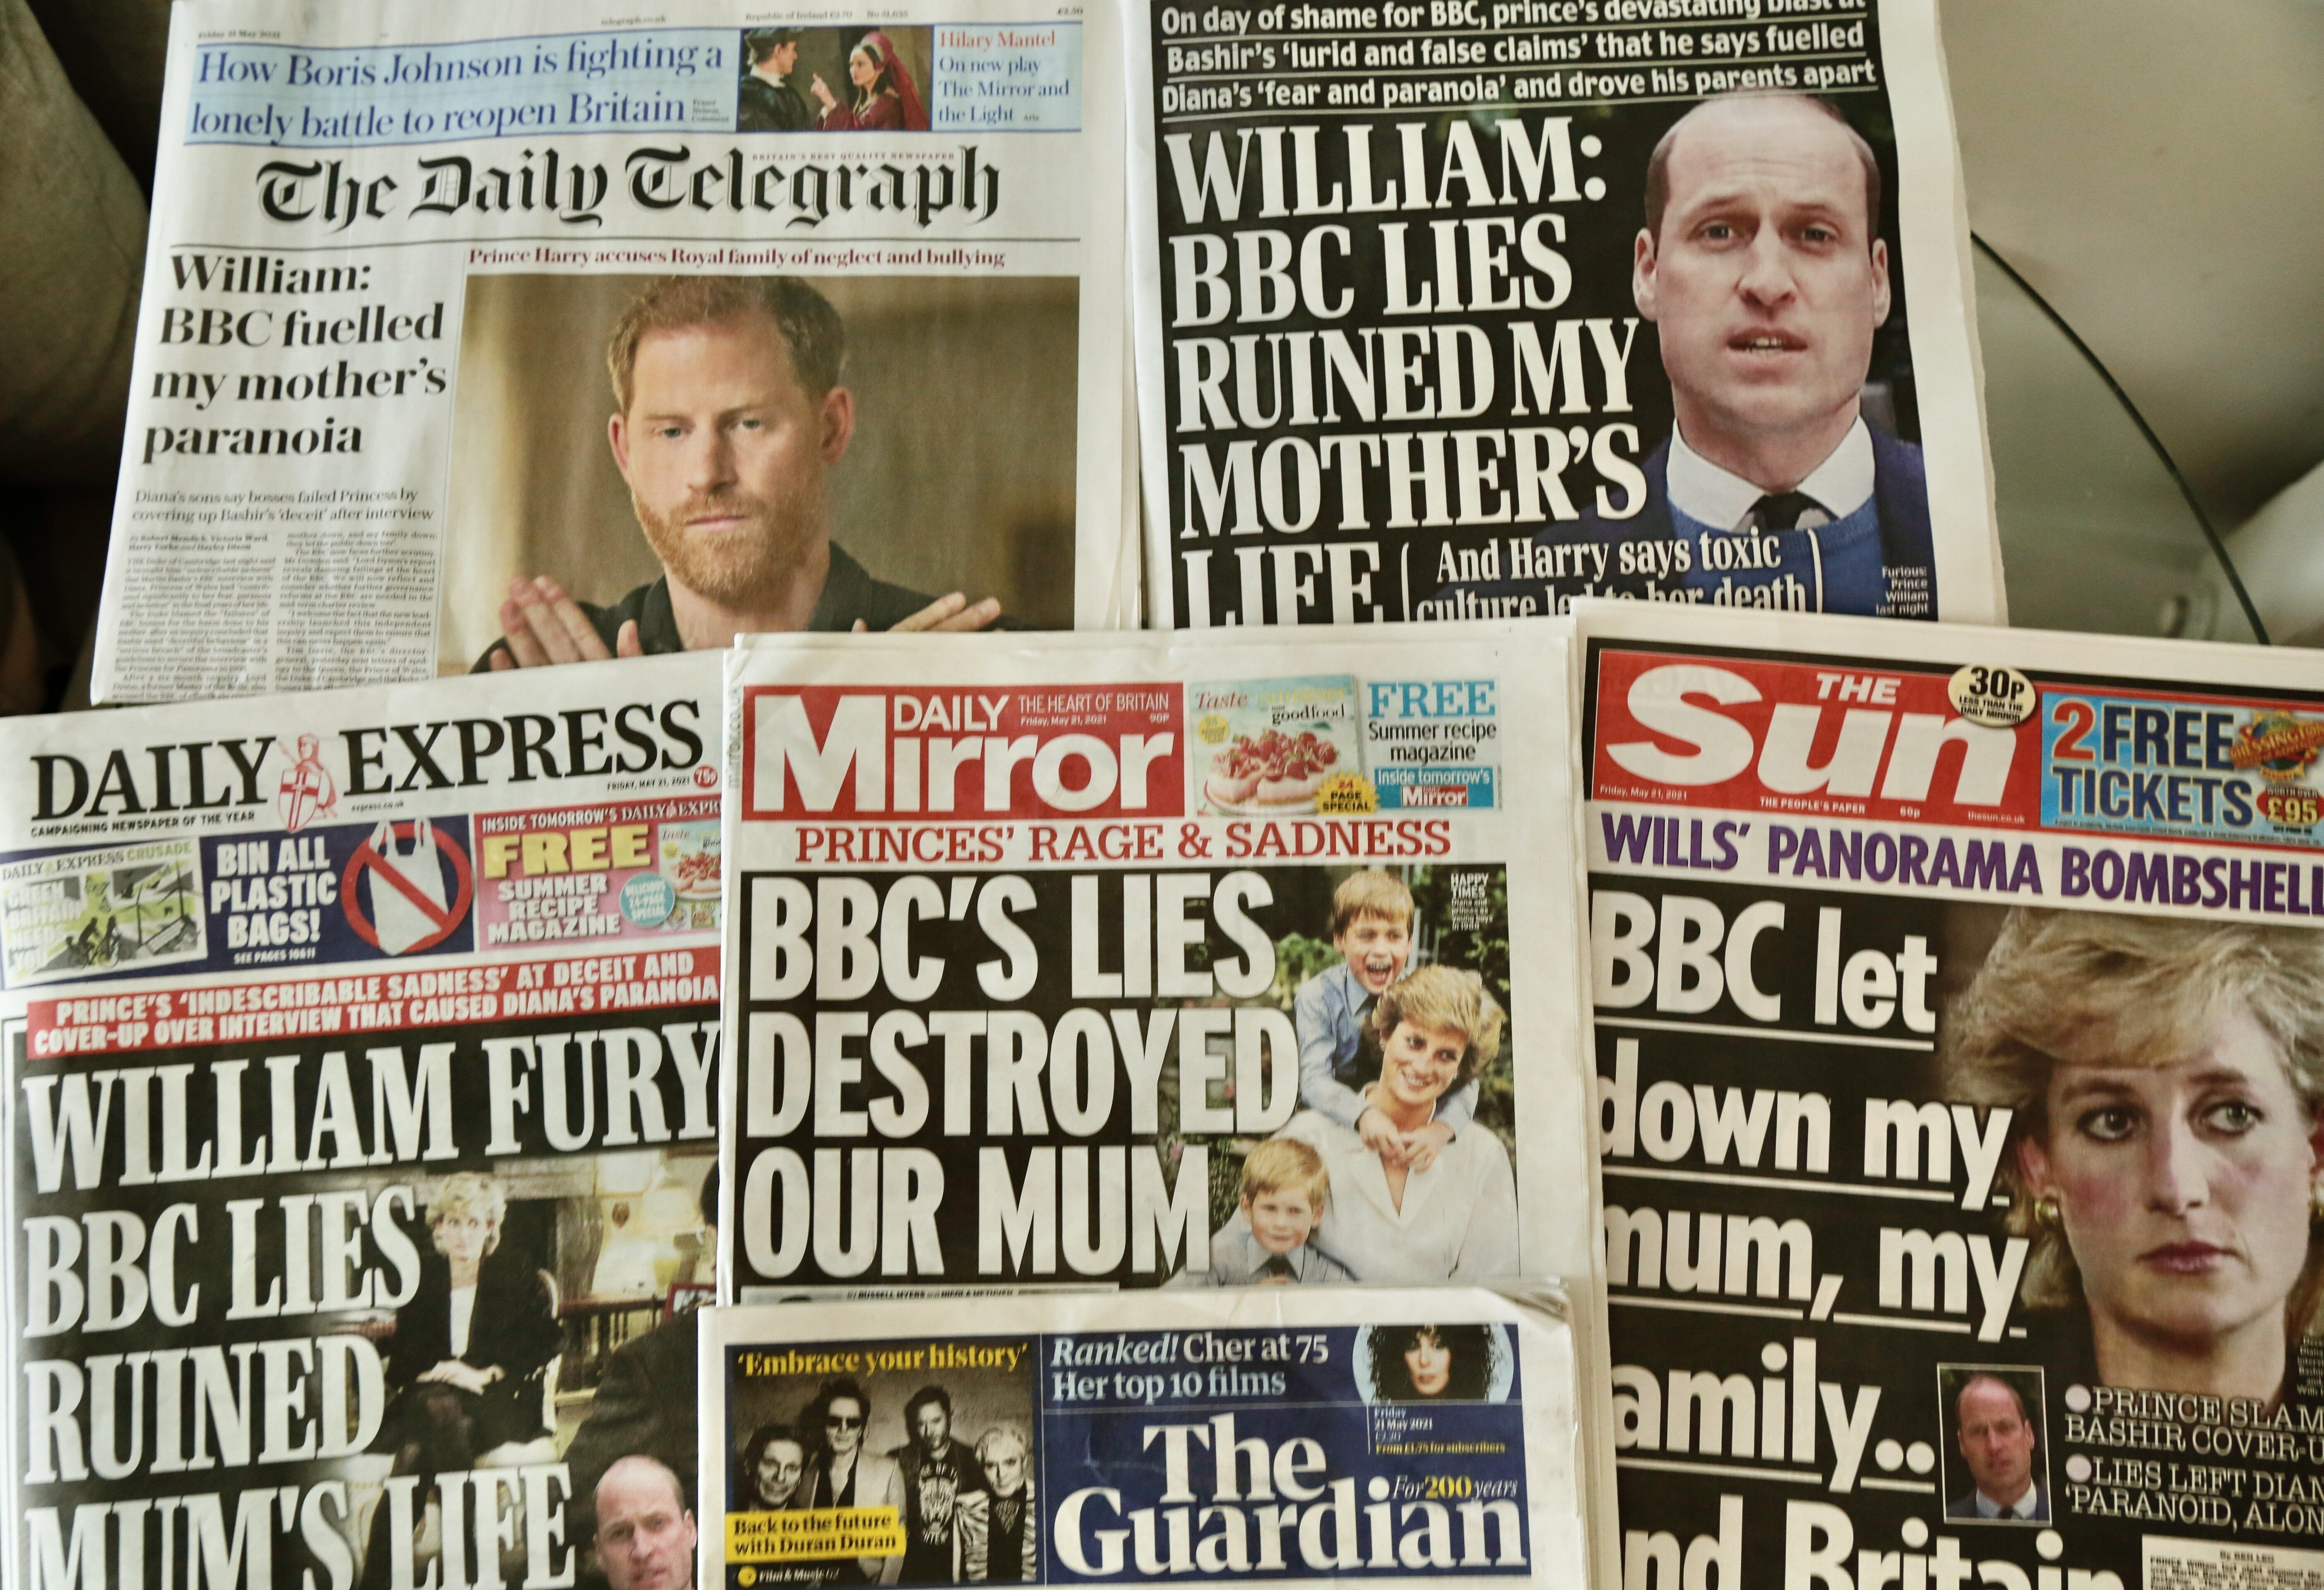 An arrangement of UK daily newspapers from May 21 shows front page headlines reporting Prince William and his brother Prince